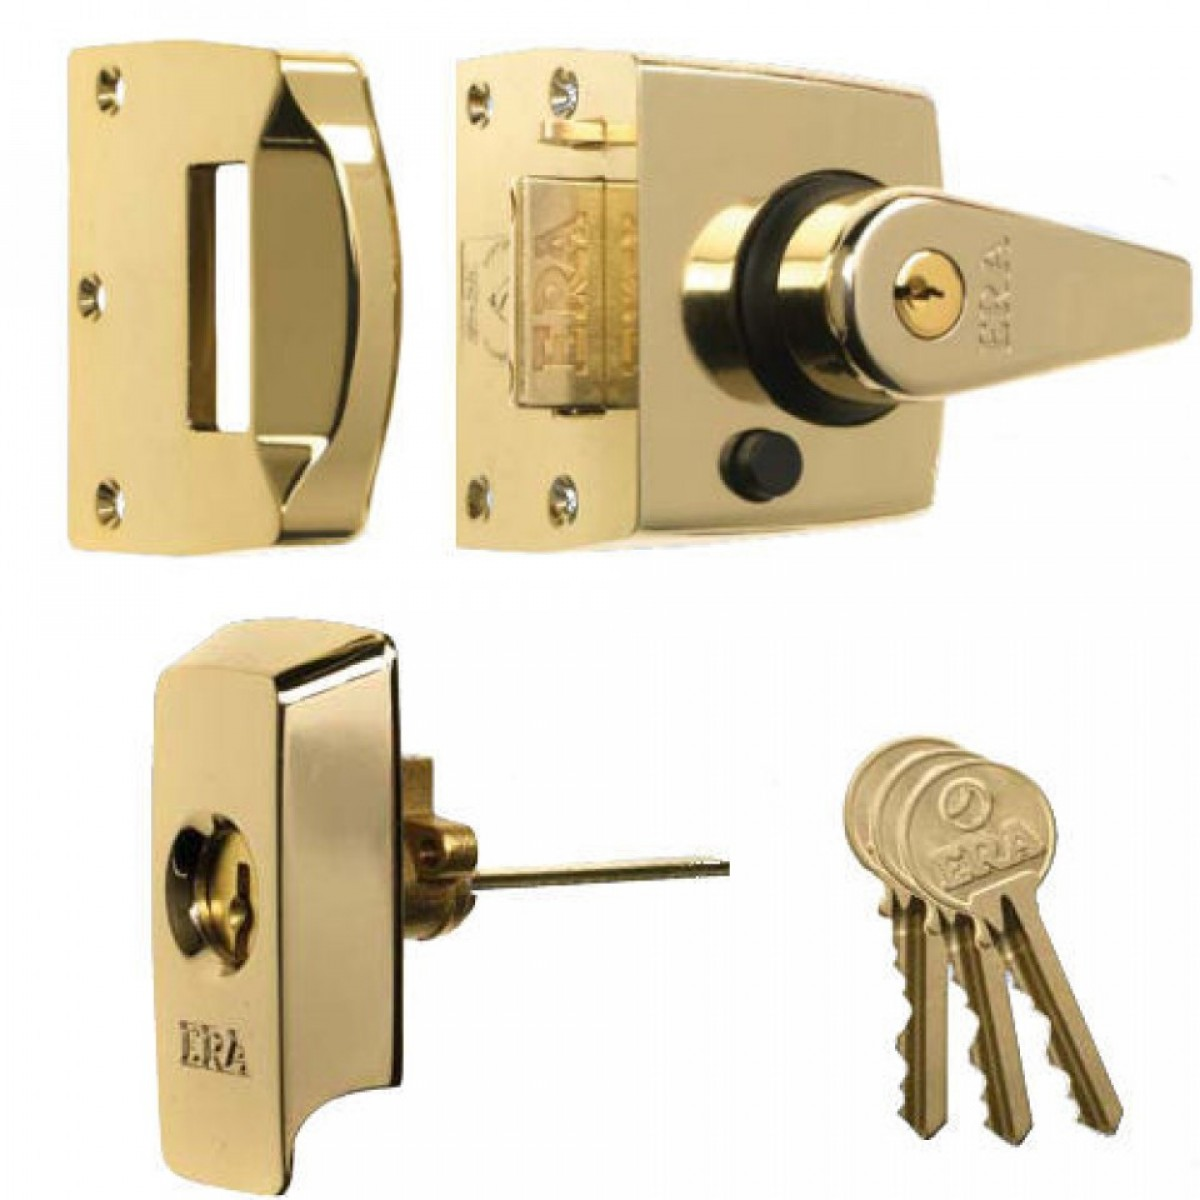 Era High Security B S Night Latch Front Door Lock In Polished Brass Night Latches Locks Latches Bolts